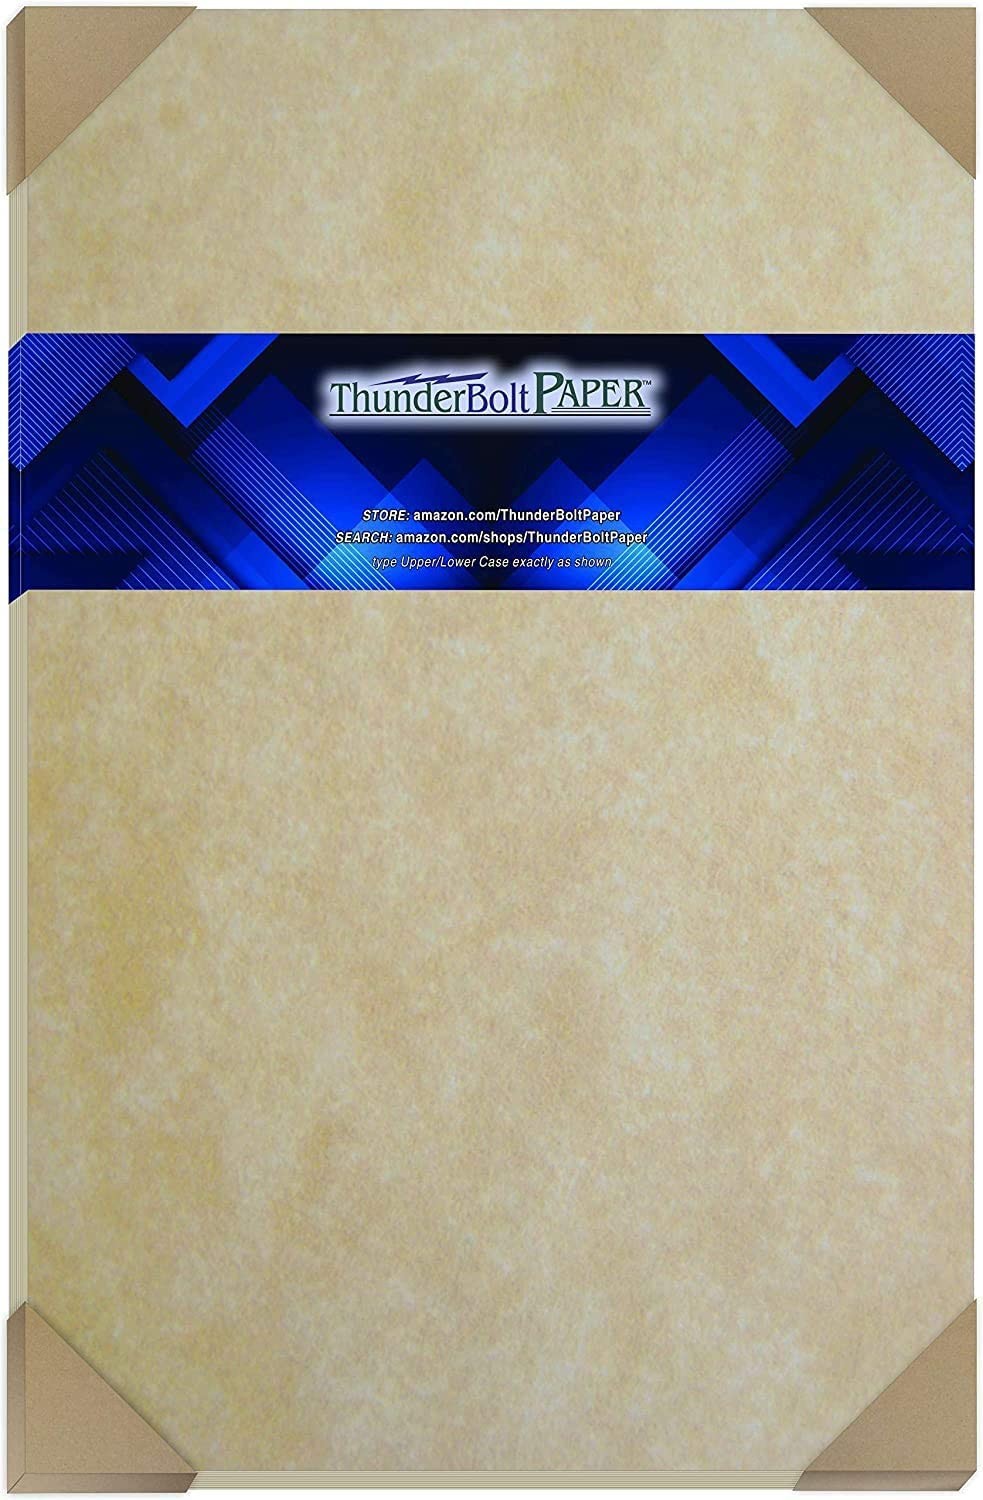 25 Old Age Parchment 60# Text (=24# Bond) Paper Sheets - 12 X 18 Inches Poster | Large Size - 60 Pound is Not Card Weight - Vintage Colored Old Parchment Semblance